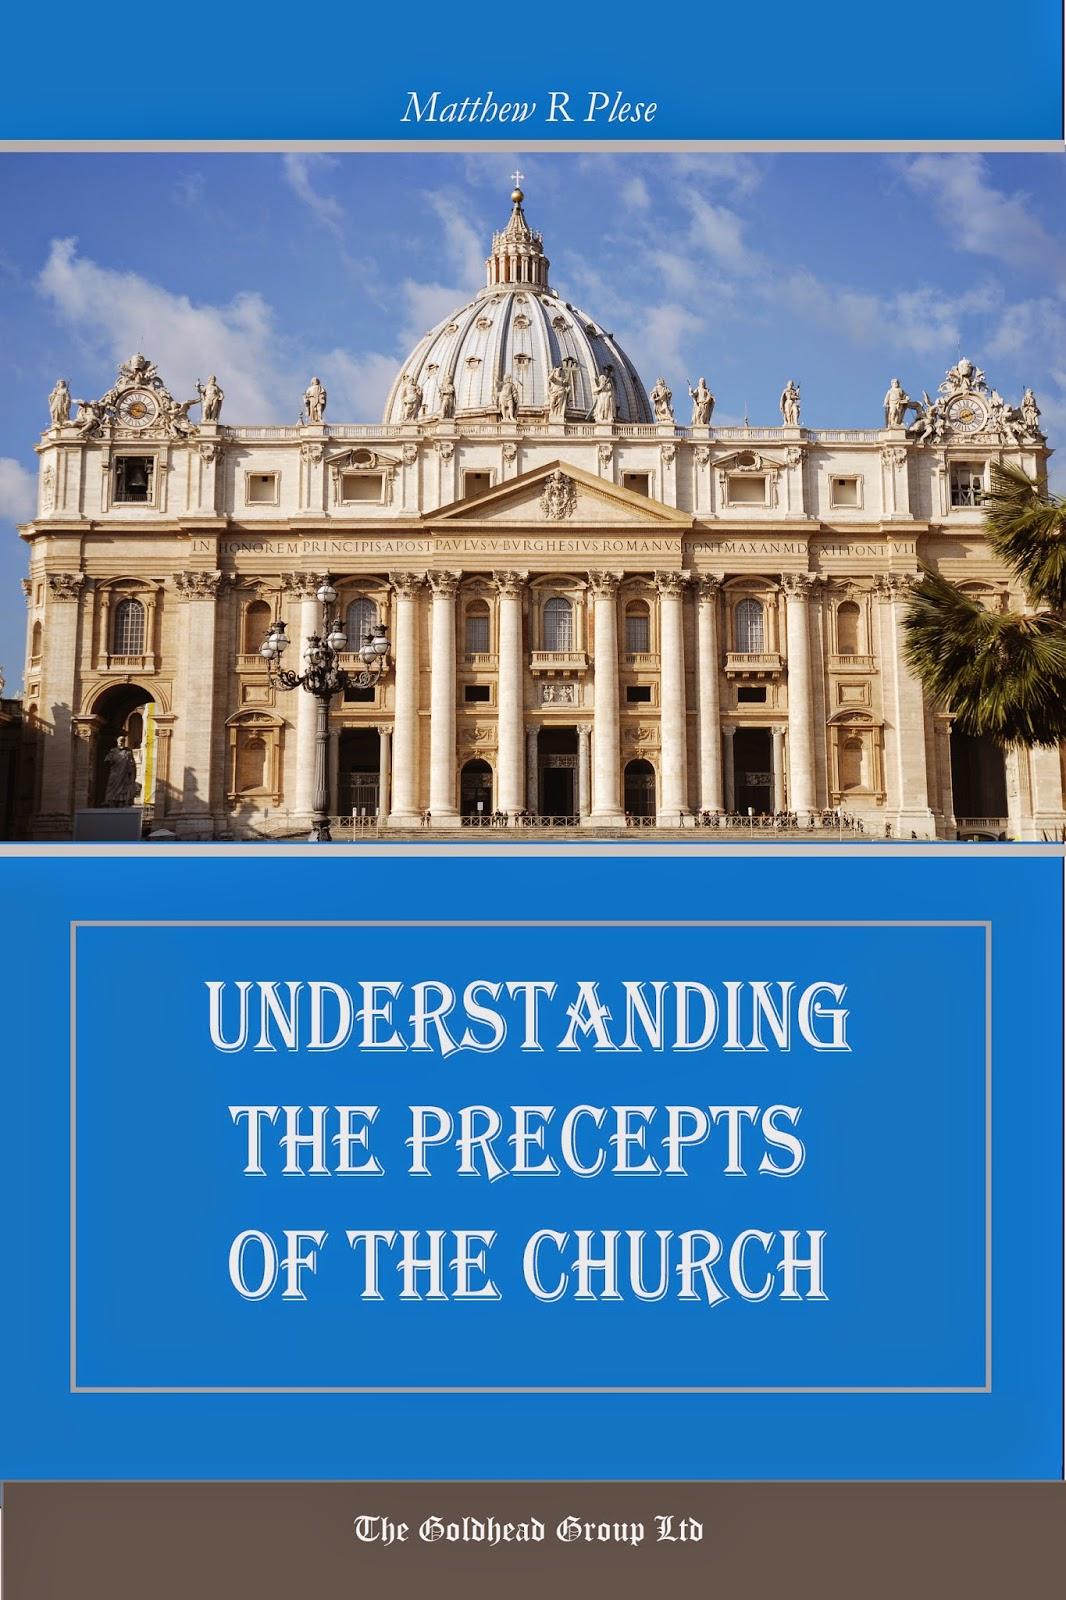 http://www.lulu.com/shop/matthew-r-plese/understanding-the-precepts-of-the-church/paperback/product-22065176.html